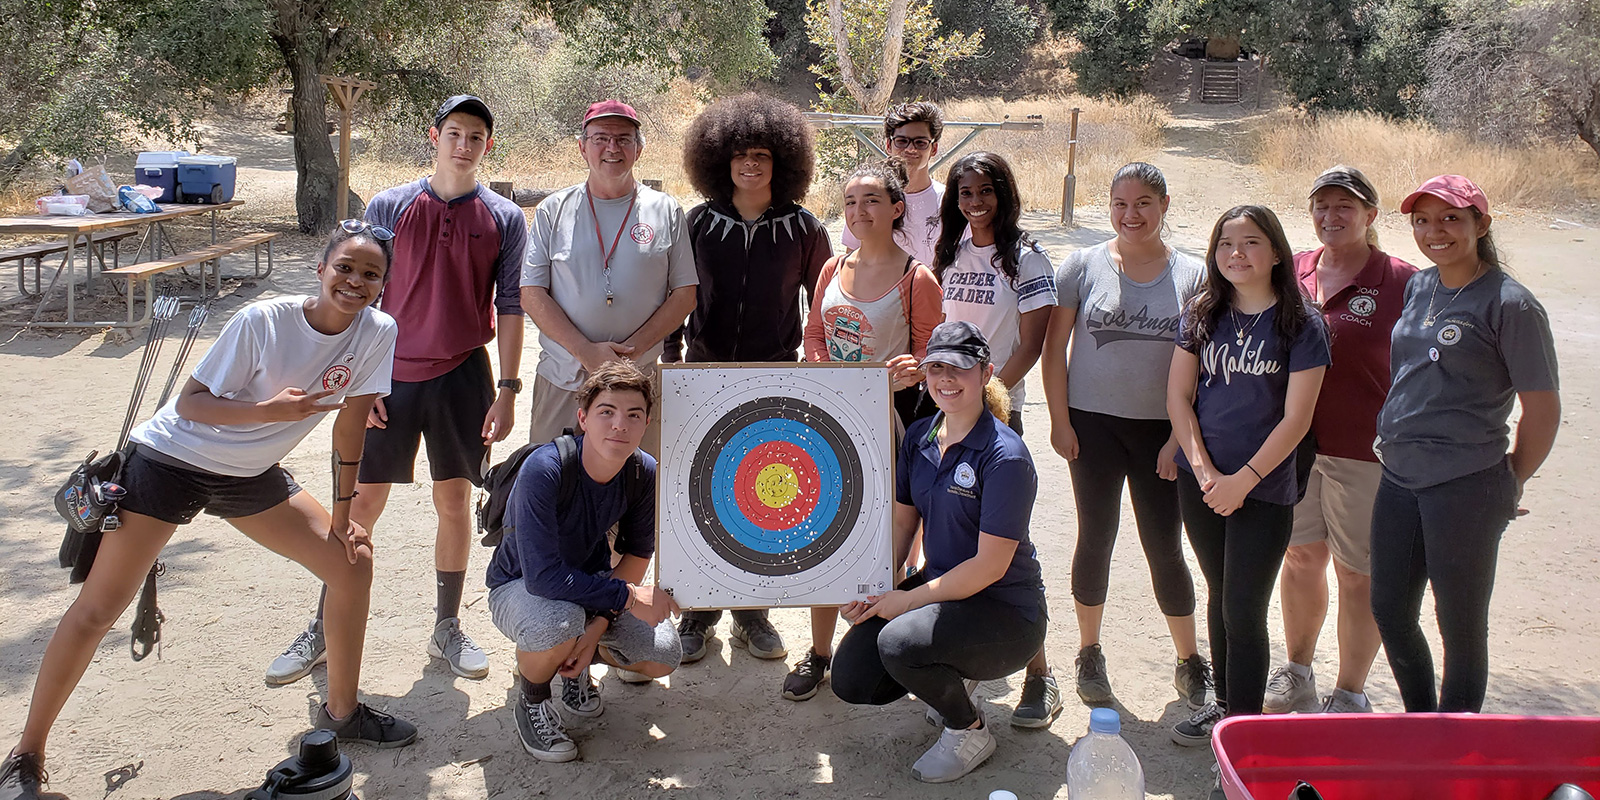 Youth Ambassadors at Lower Arroyo Seco